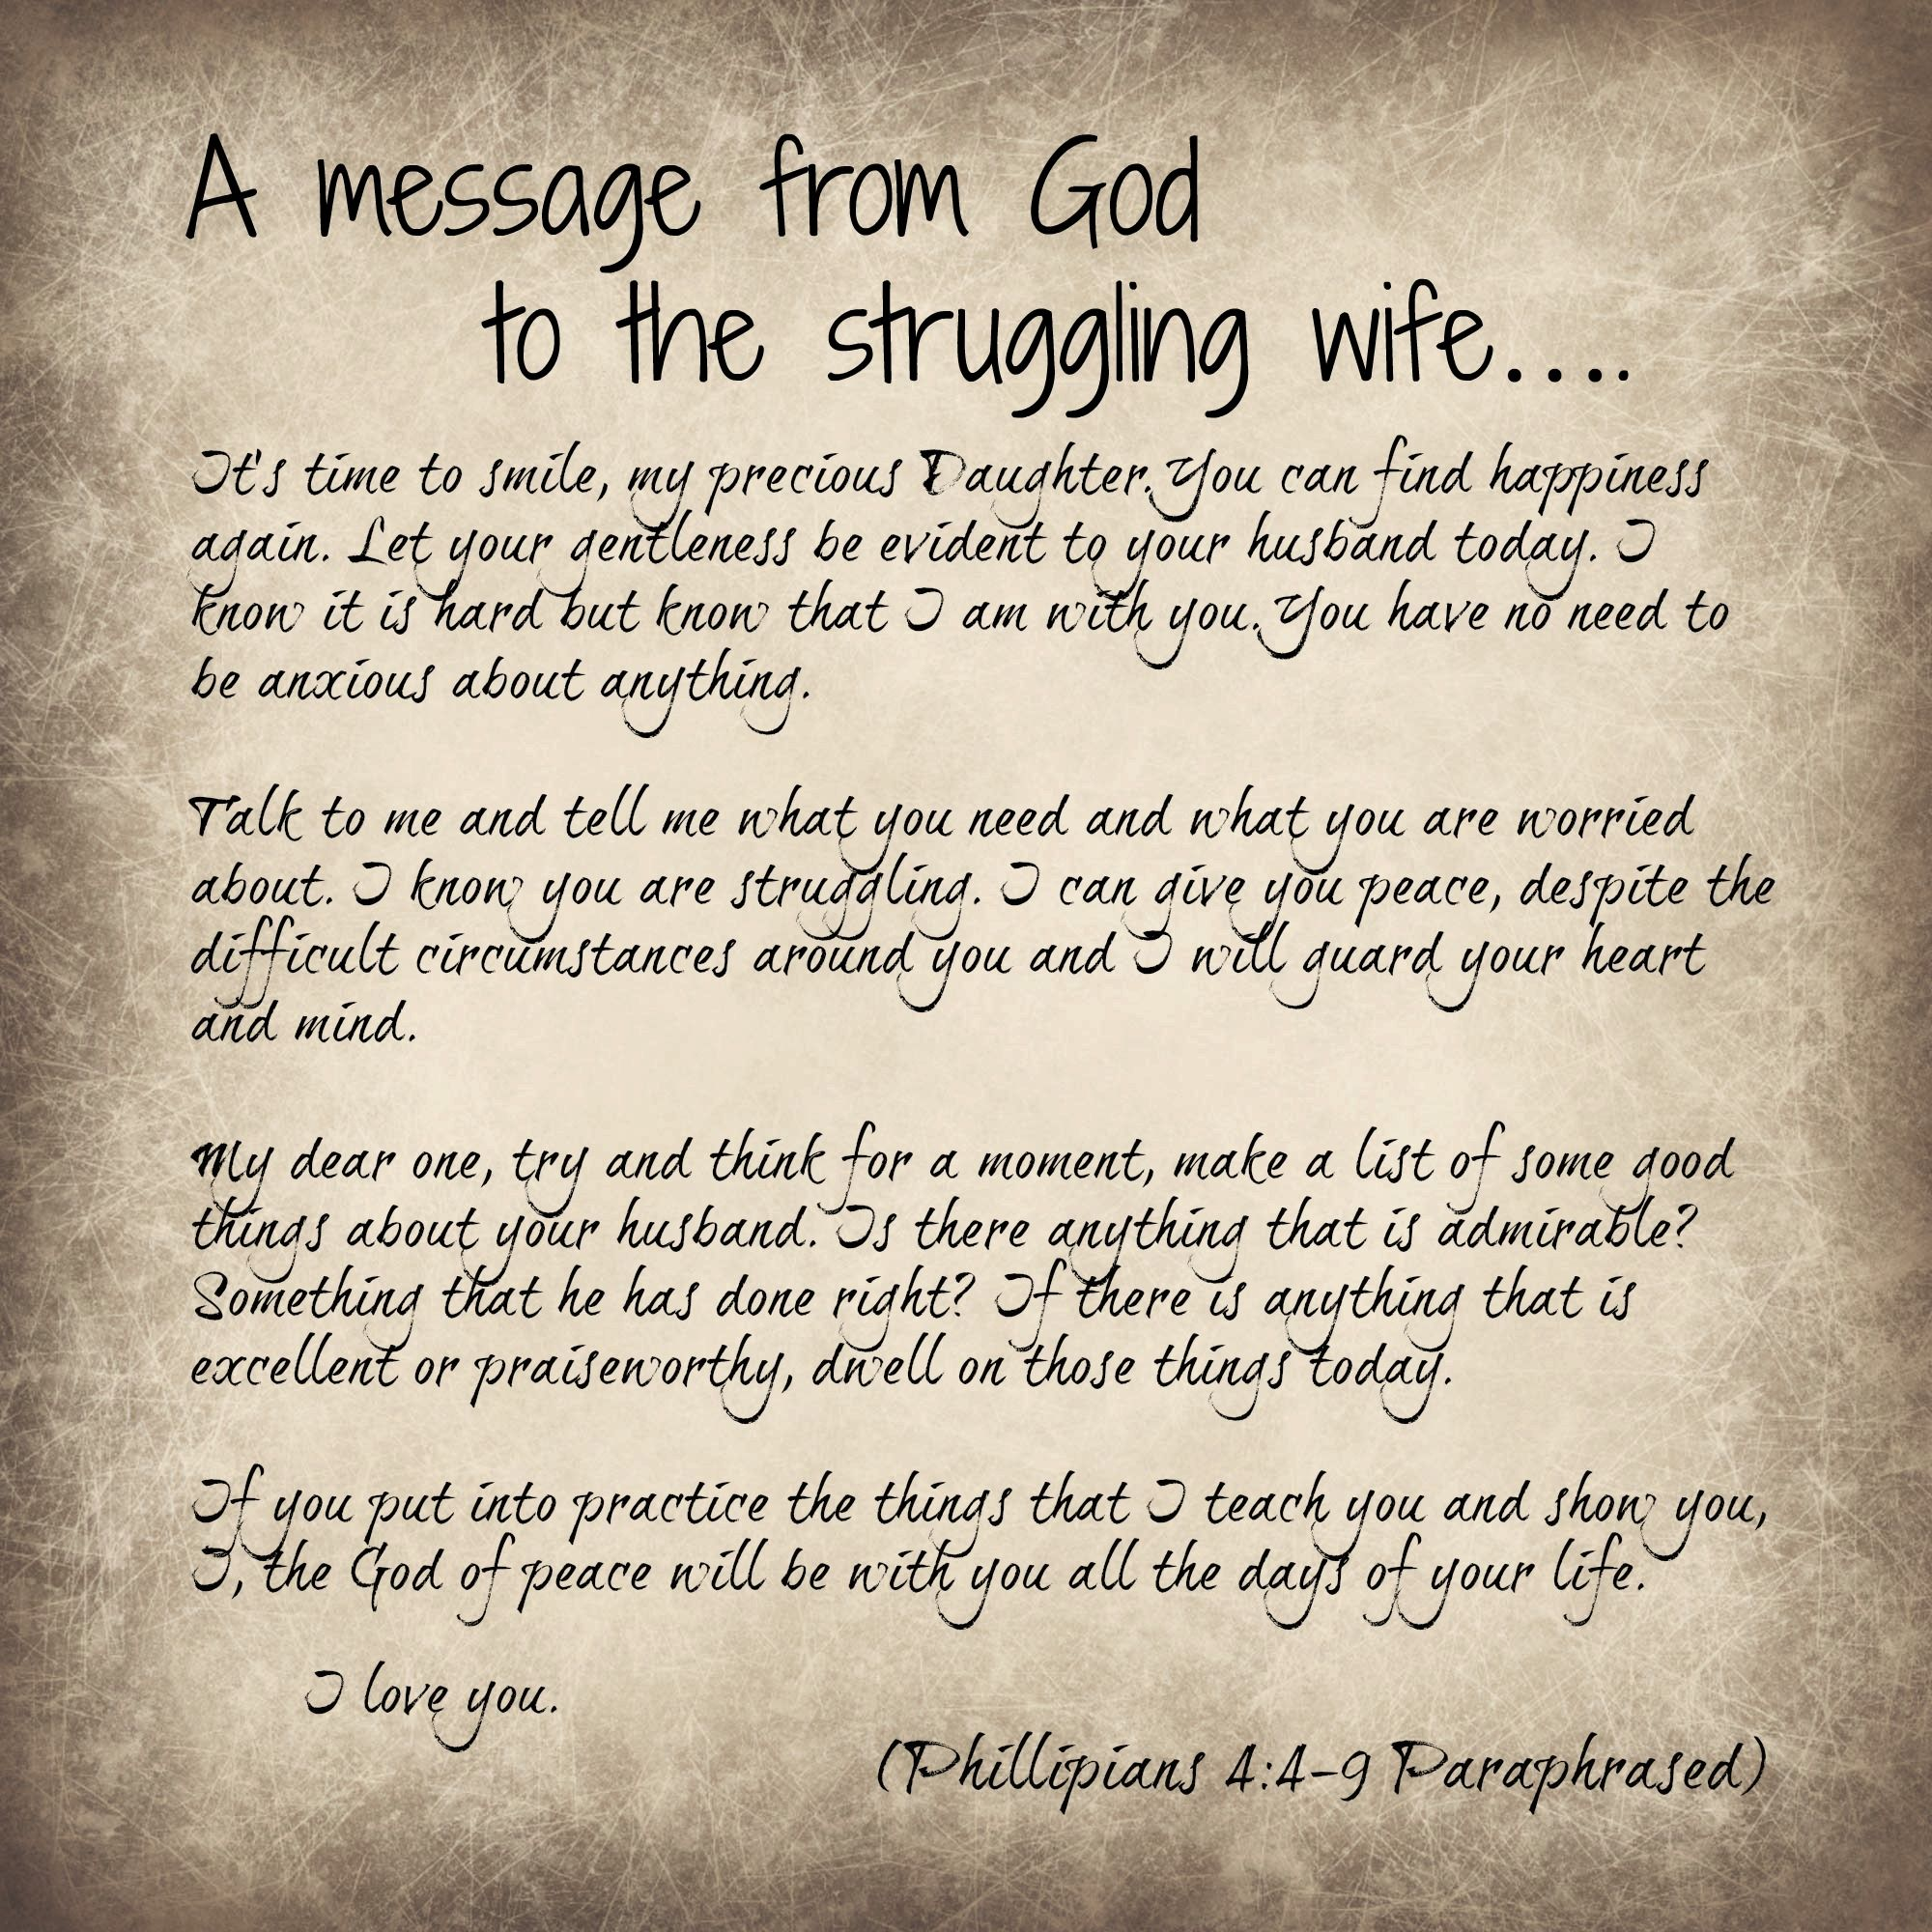 Bible verses about marriage struggles